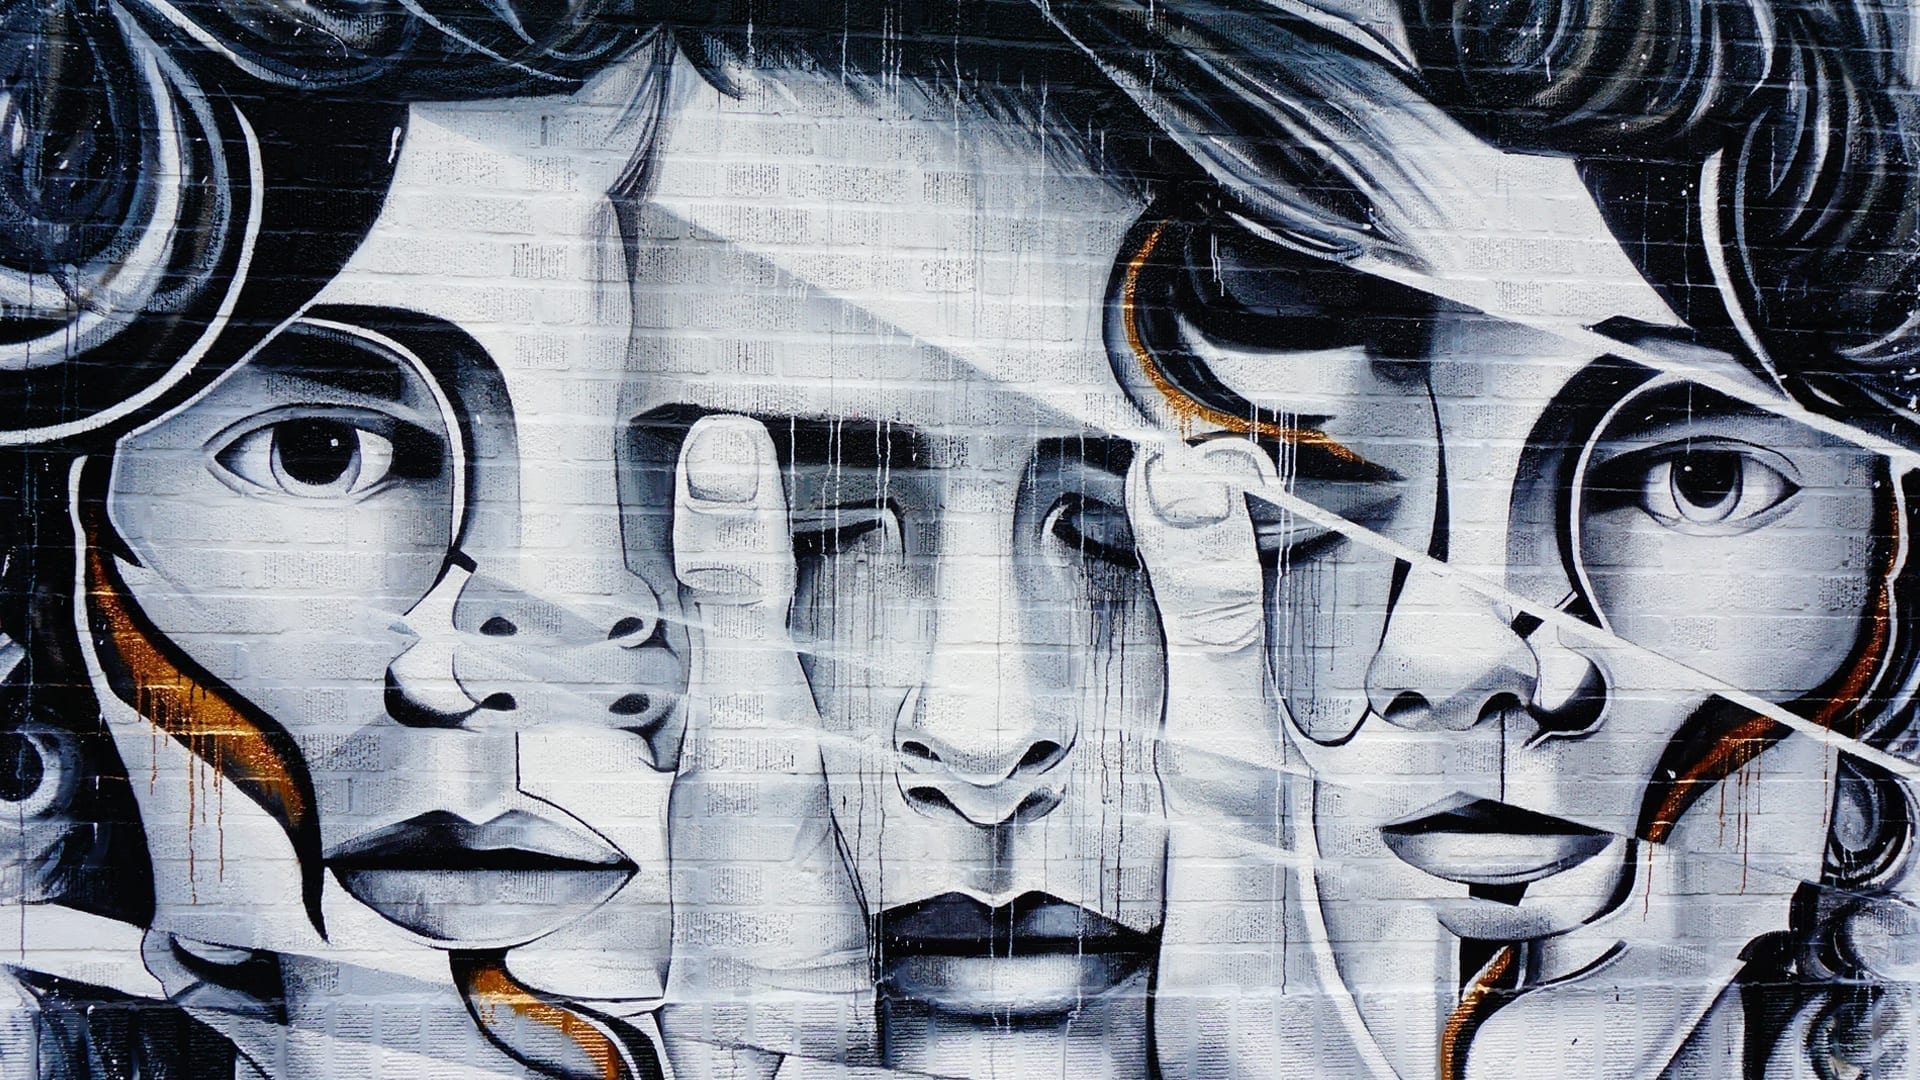 Letting Go of Imposter Syndrome - abstract street art painting of faces